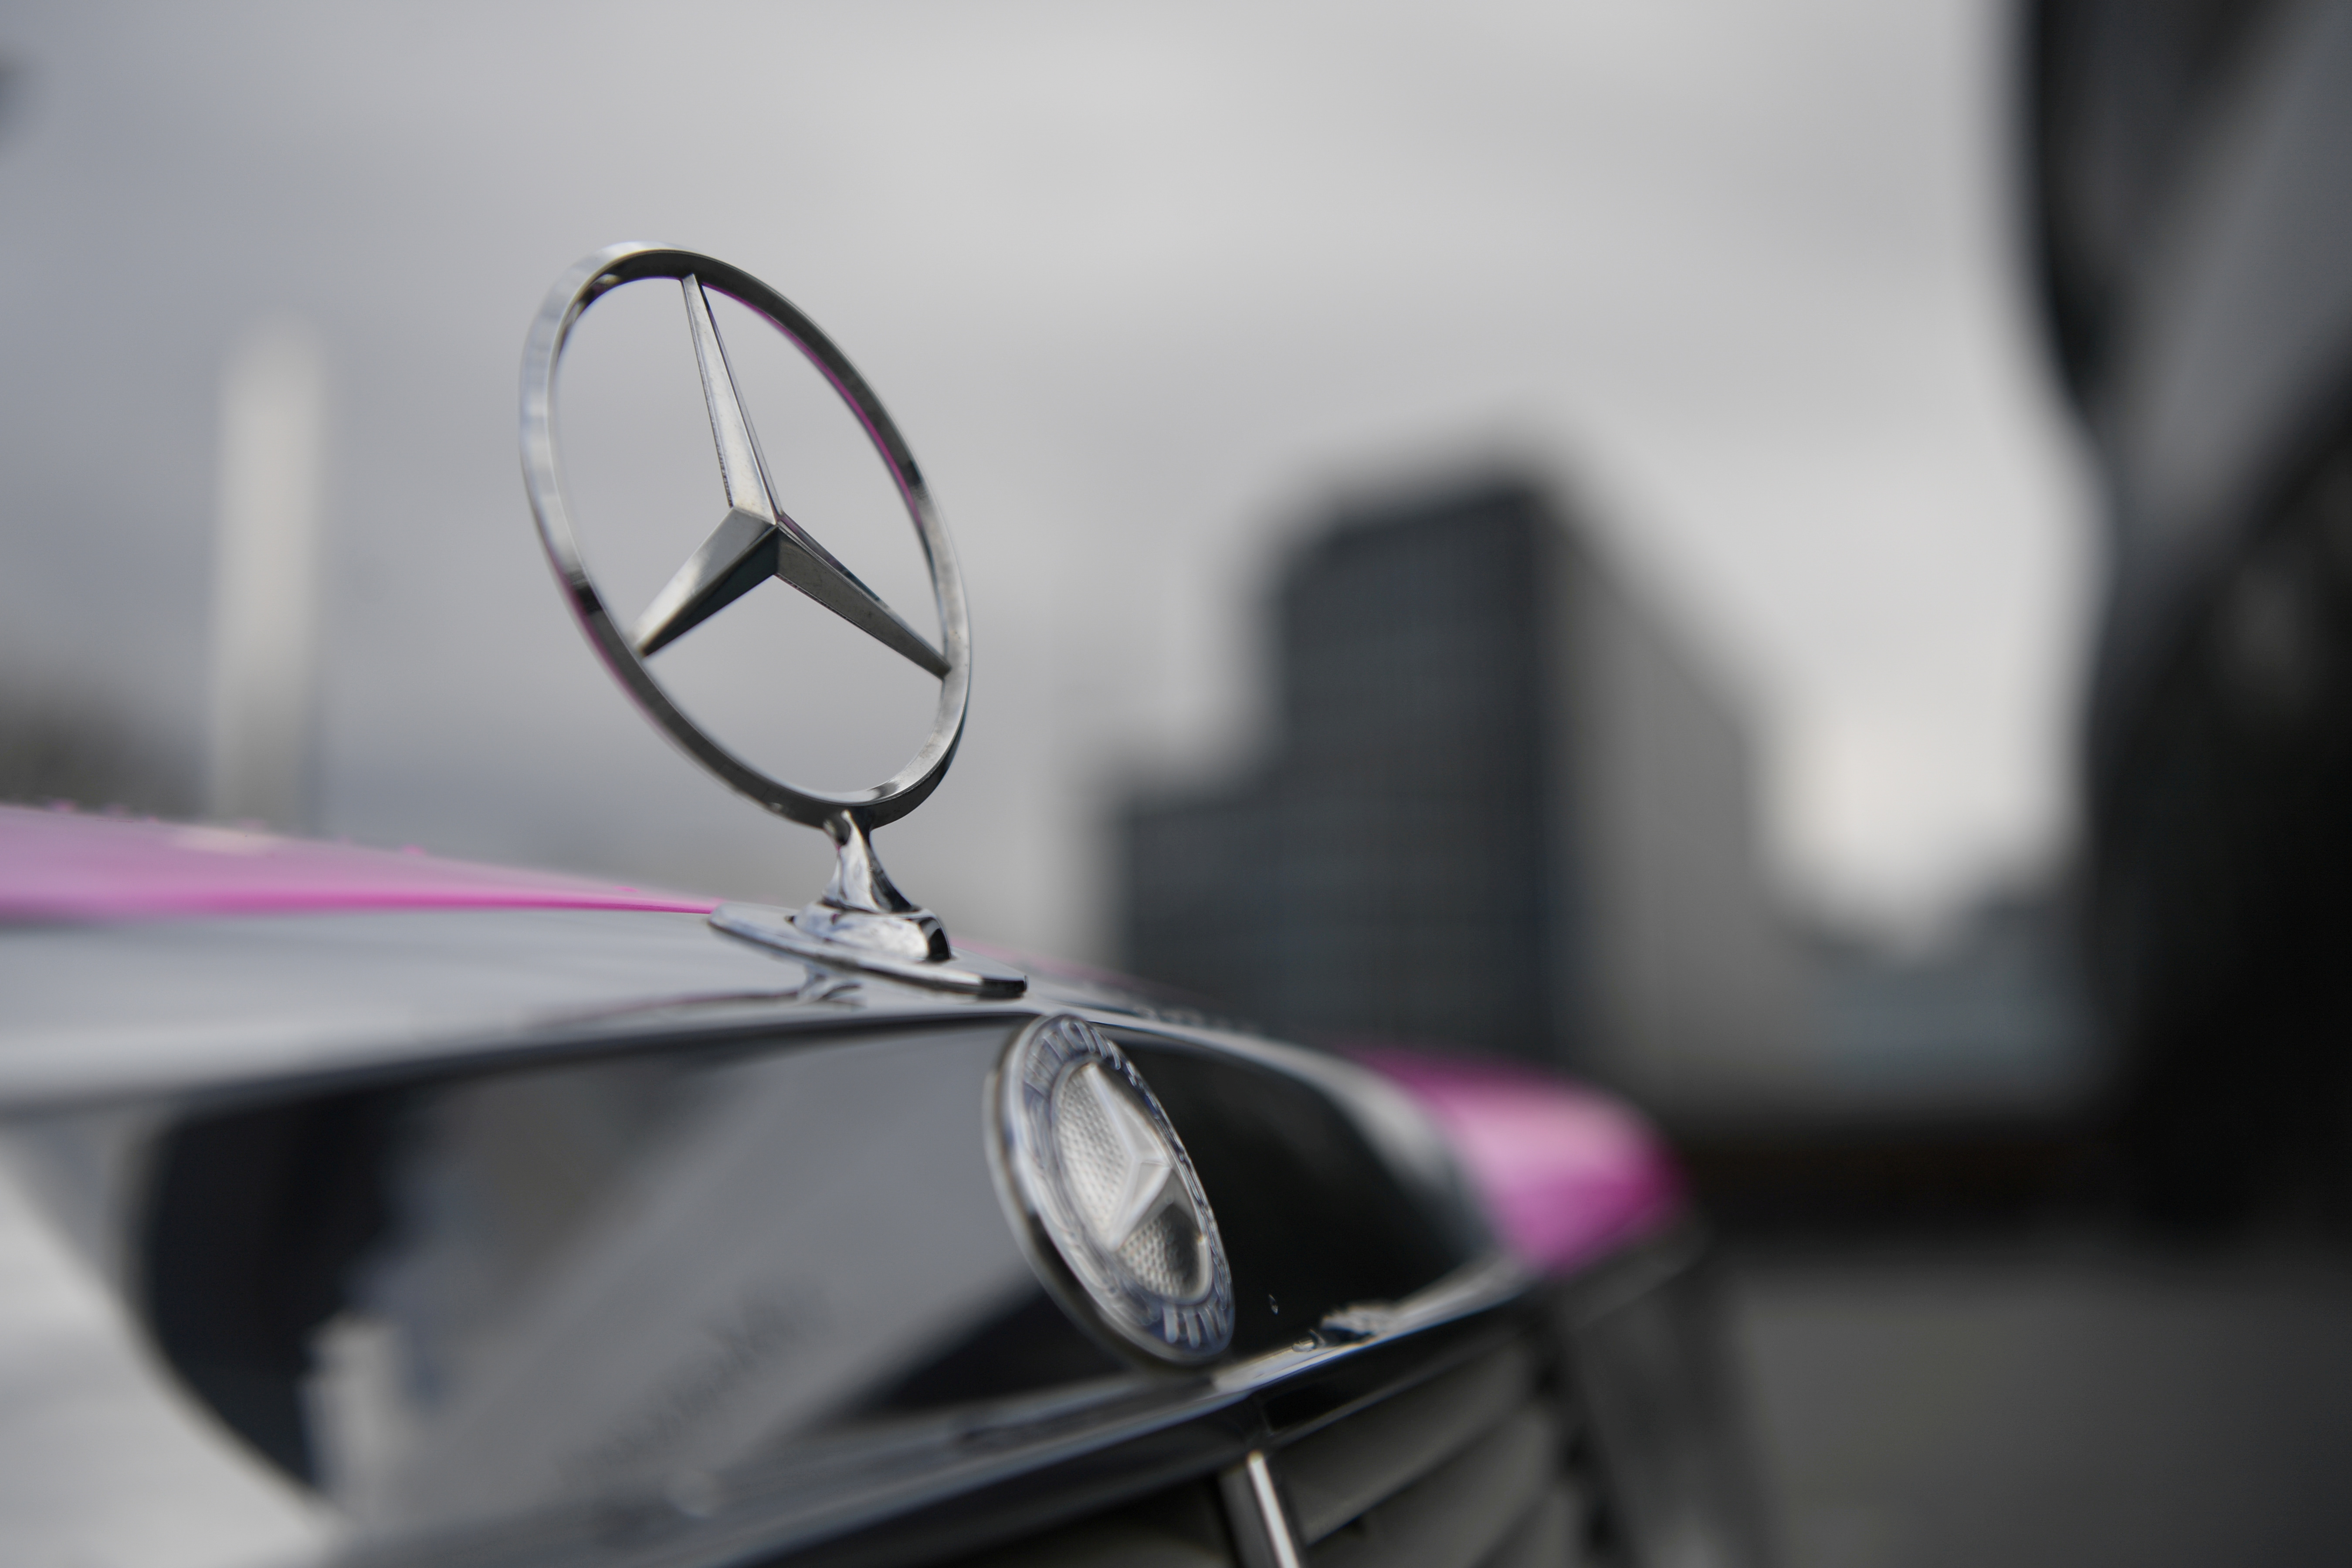 The Mercedes-Benz logo is seen on a car in front of the Mercedes-Benz Museum in Stuttgart, Germany February 11, 2020. REUTERS/Andreas Gebert